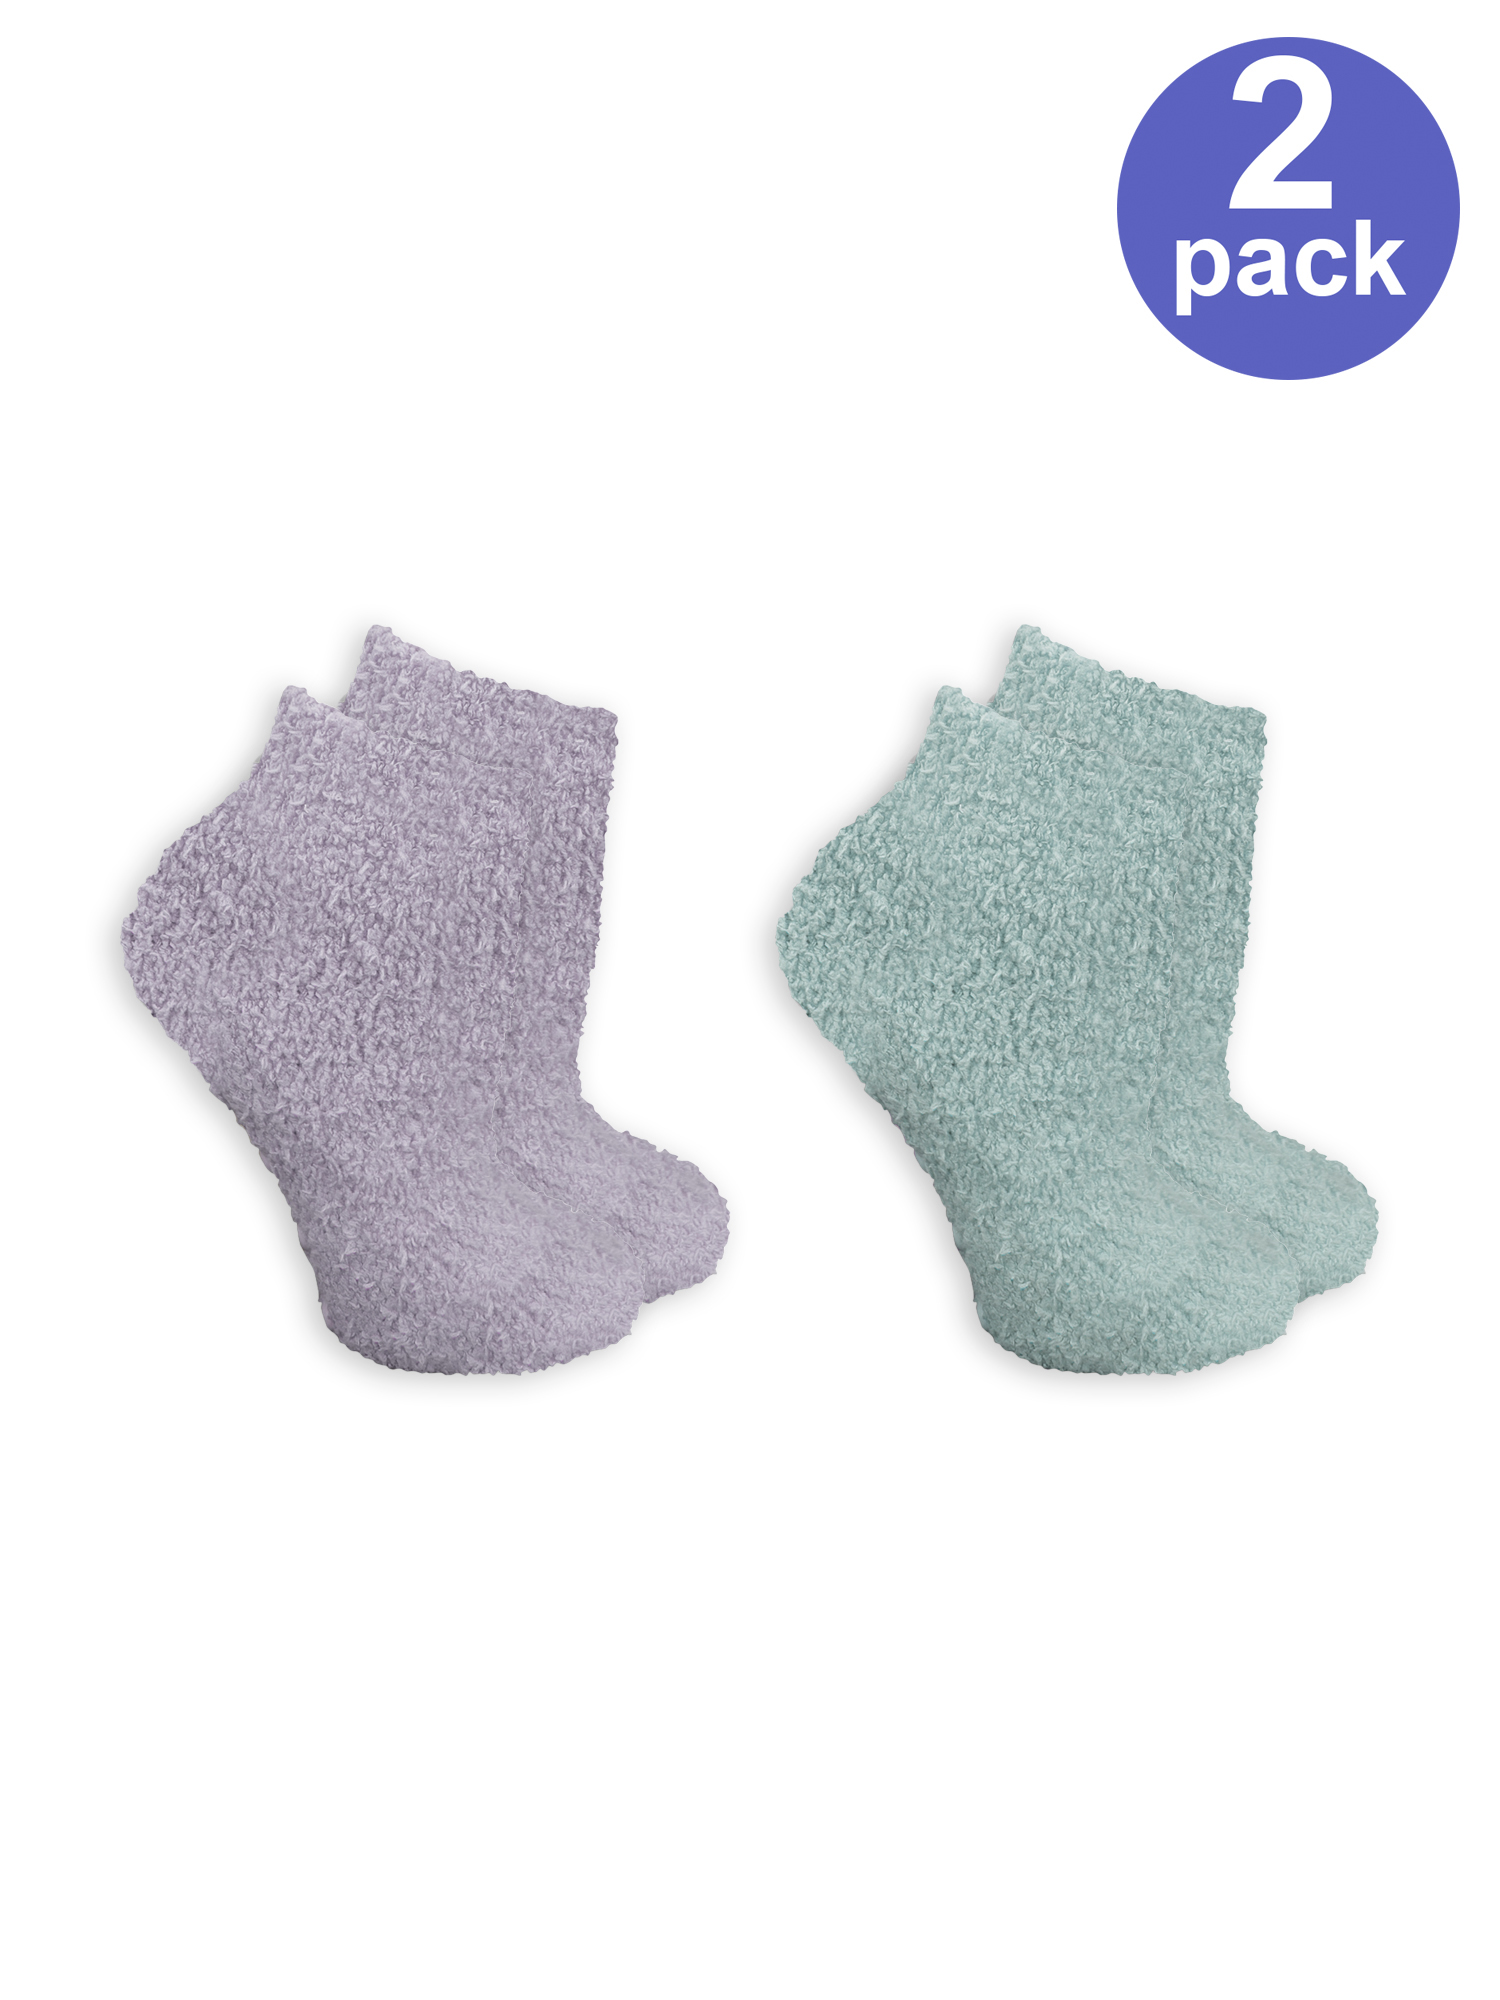 I dreamed that I was buying socks in the store